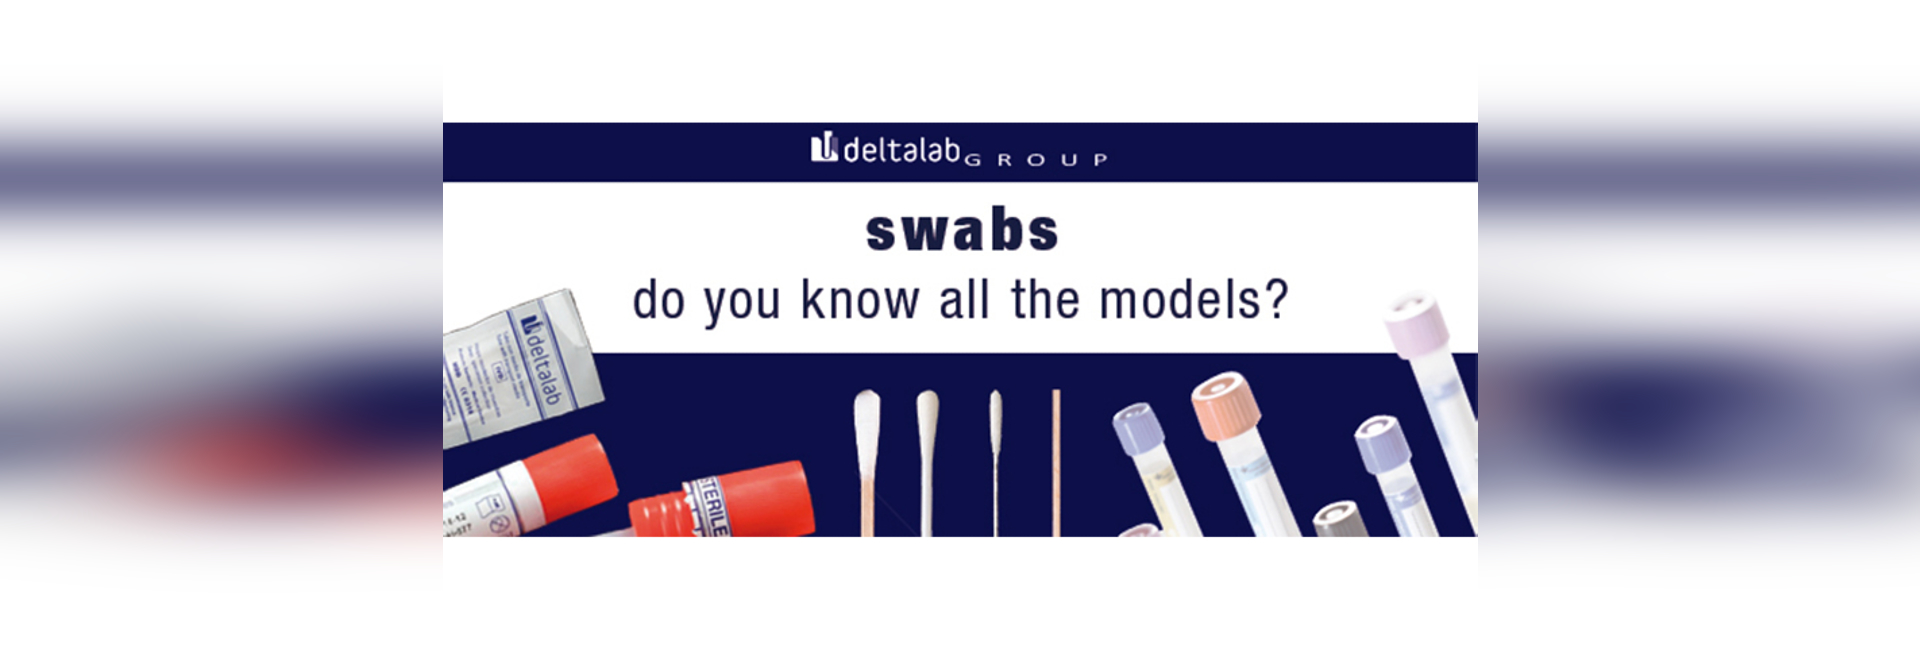 Do you know all the types of swabs?